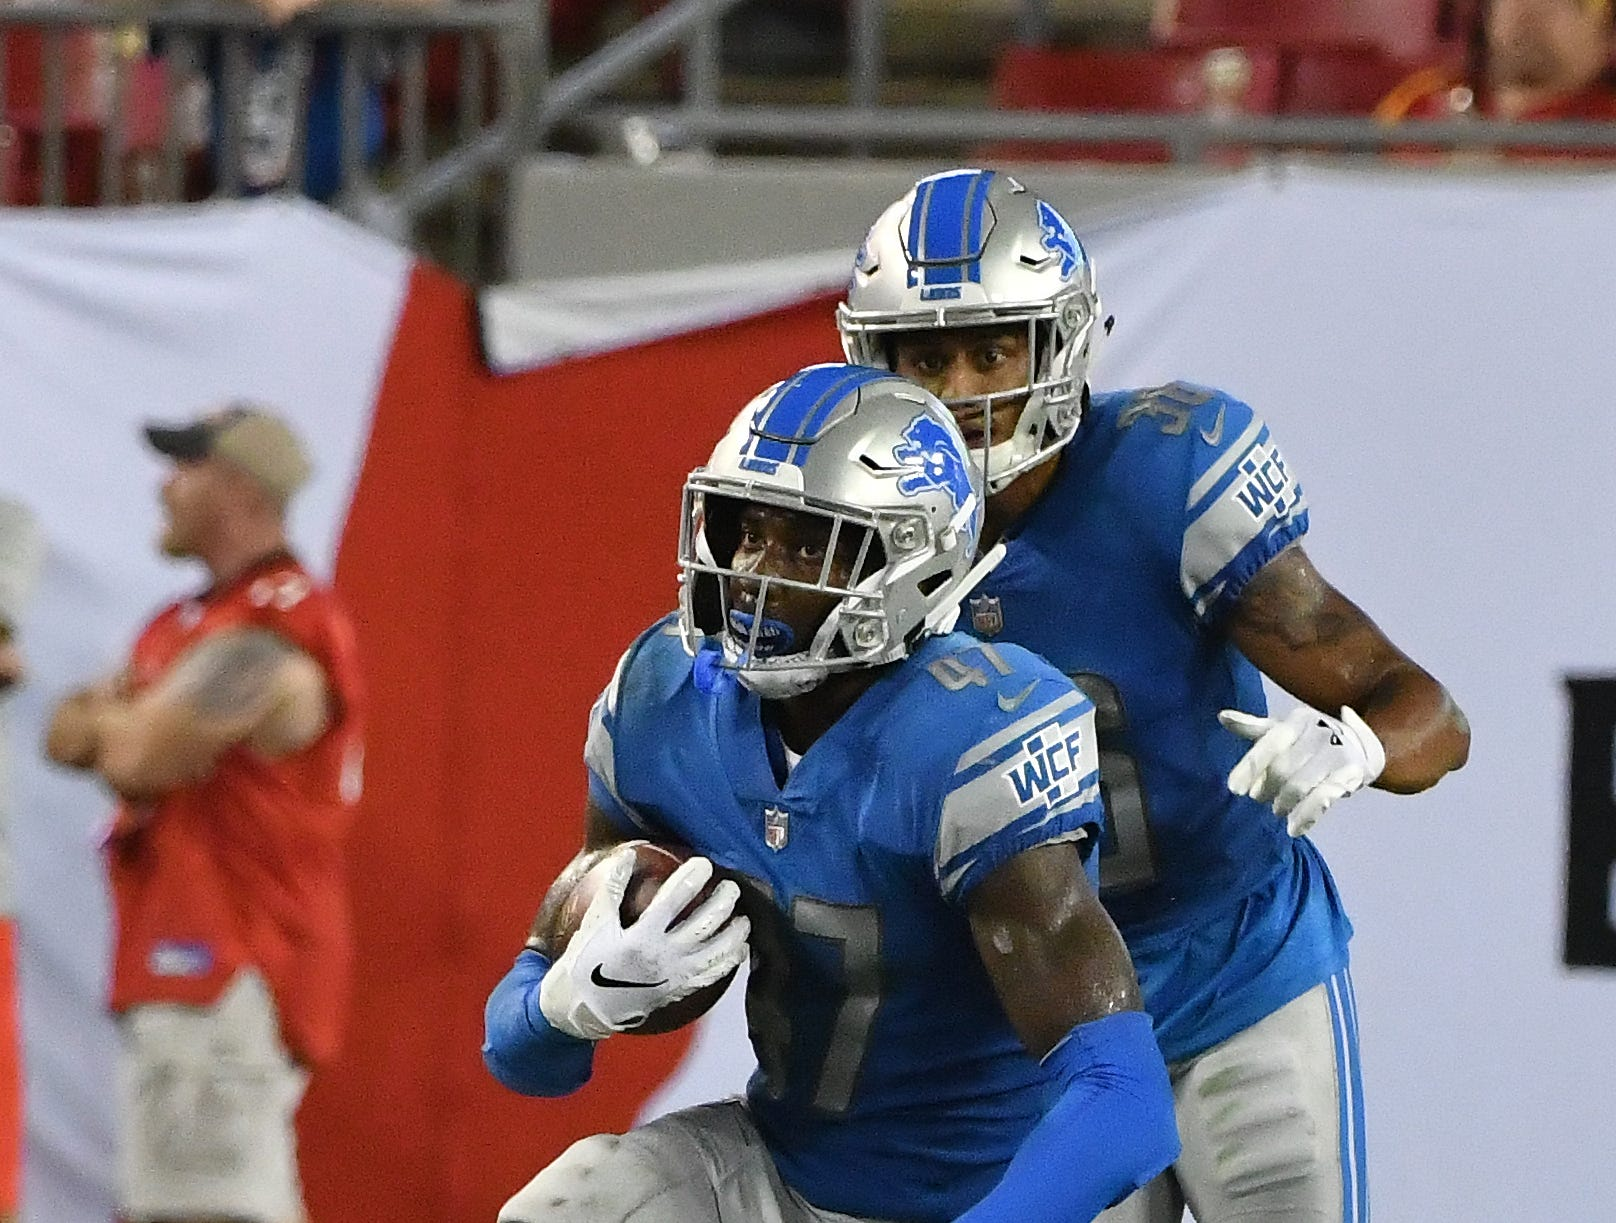 S Tracy Walker: A third-round pick this season, the Lions have been slowly incorporating Walker into the mix, giving him more than 20 snaps only once, when he was forced into action after Quandre Diggs broke his hand against Miami. What you have to like about Walker is how well he's executed when on the field. He's been solid in coverage, including an interception that was ultimately negated by a penalty away from the ball, while consistently wrapping up when making a tackle. Grade: B